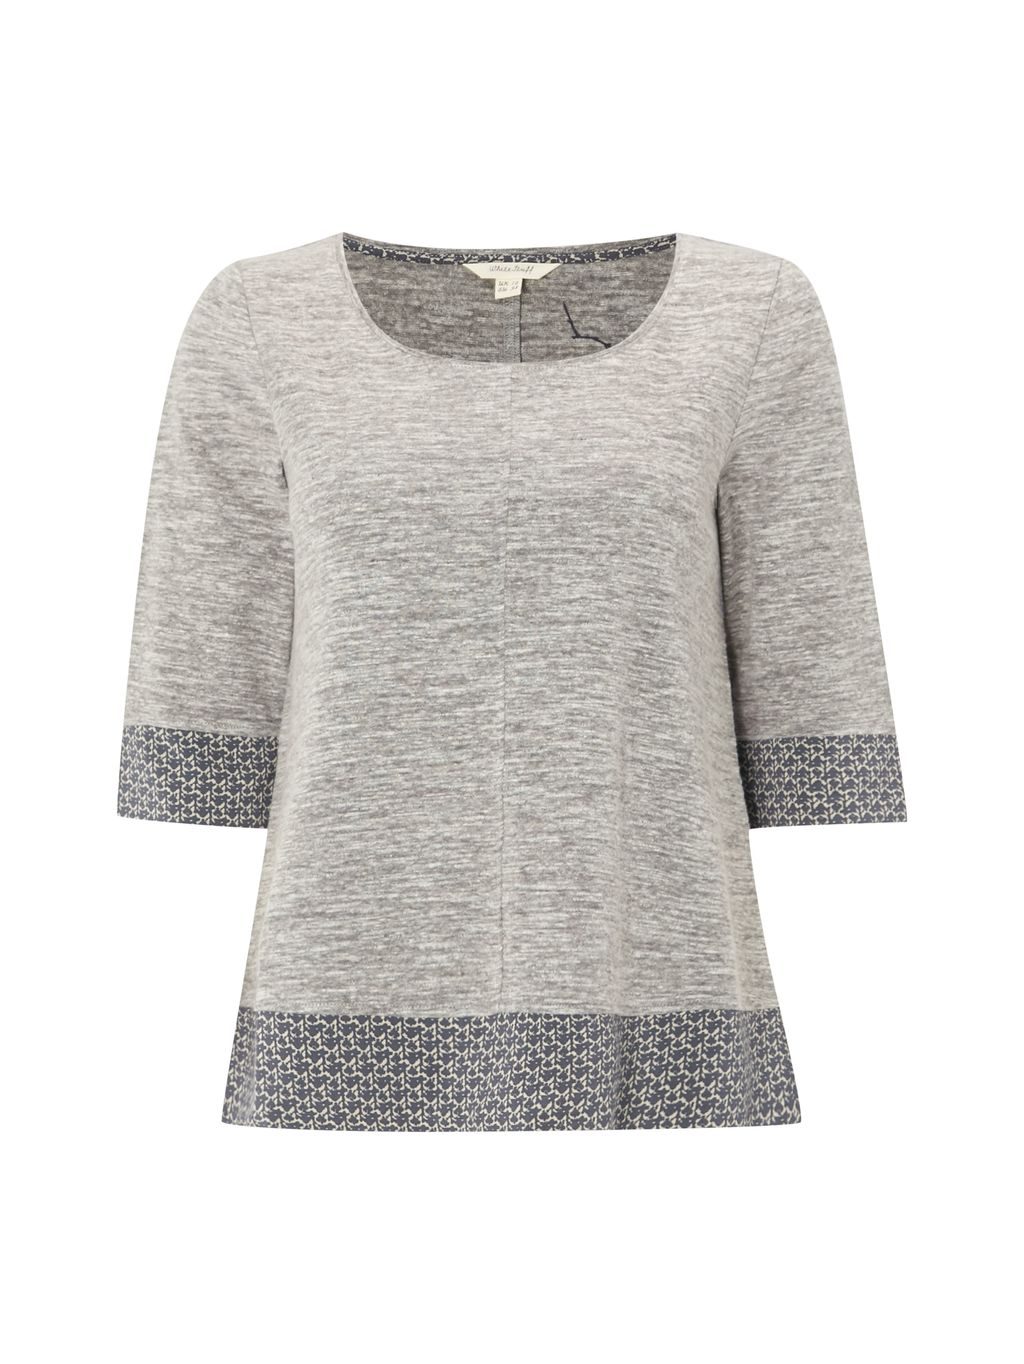 Suzi Jersey Tee, Grey - neckline: round neck; style: t-shirt; predominant colour: light grey; occasions: casual; length: standard; fibres: viscose/rayon - 100%; fit: body skimming; sleeve length: 3/4 length; sleeve style: standard; pattern type: fabric; pattern size: light/subtle; pattern: patterned/print; texture group: jersey - stretchy/drapey; season: s/s 2016